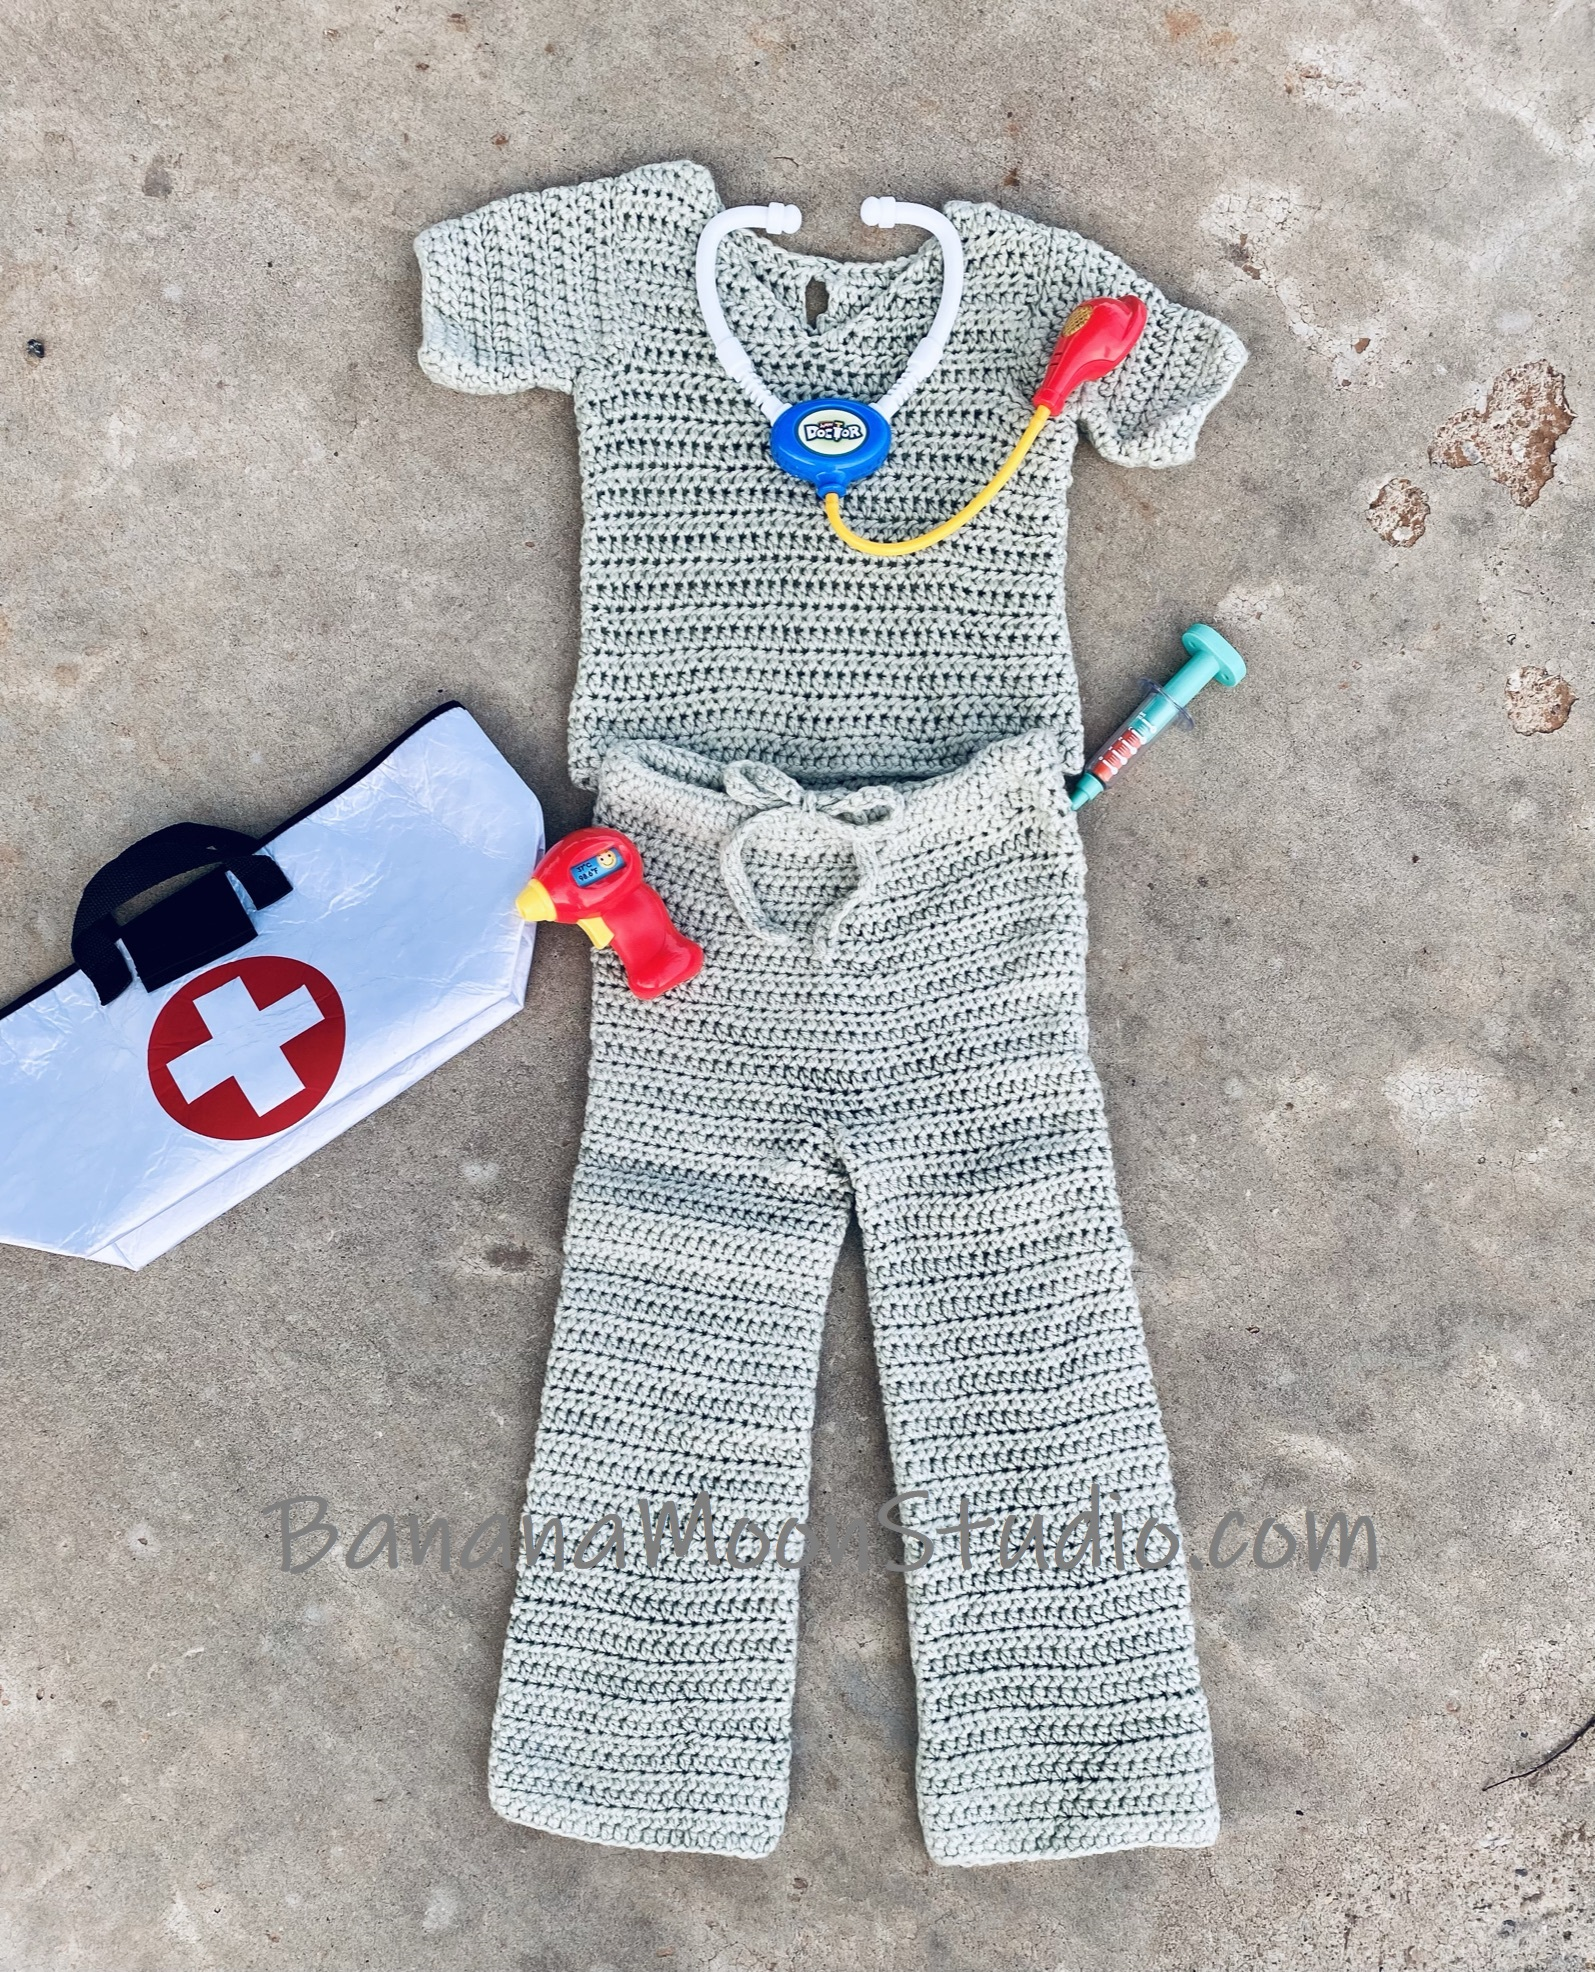 """Crochet top and pants that look like nurse's scrubs for children. Pale green on a gray background with various children's """"doctor"""" toys. Text reads: BananaMoonStudio.com"""